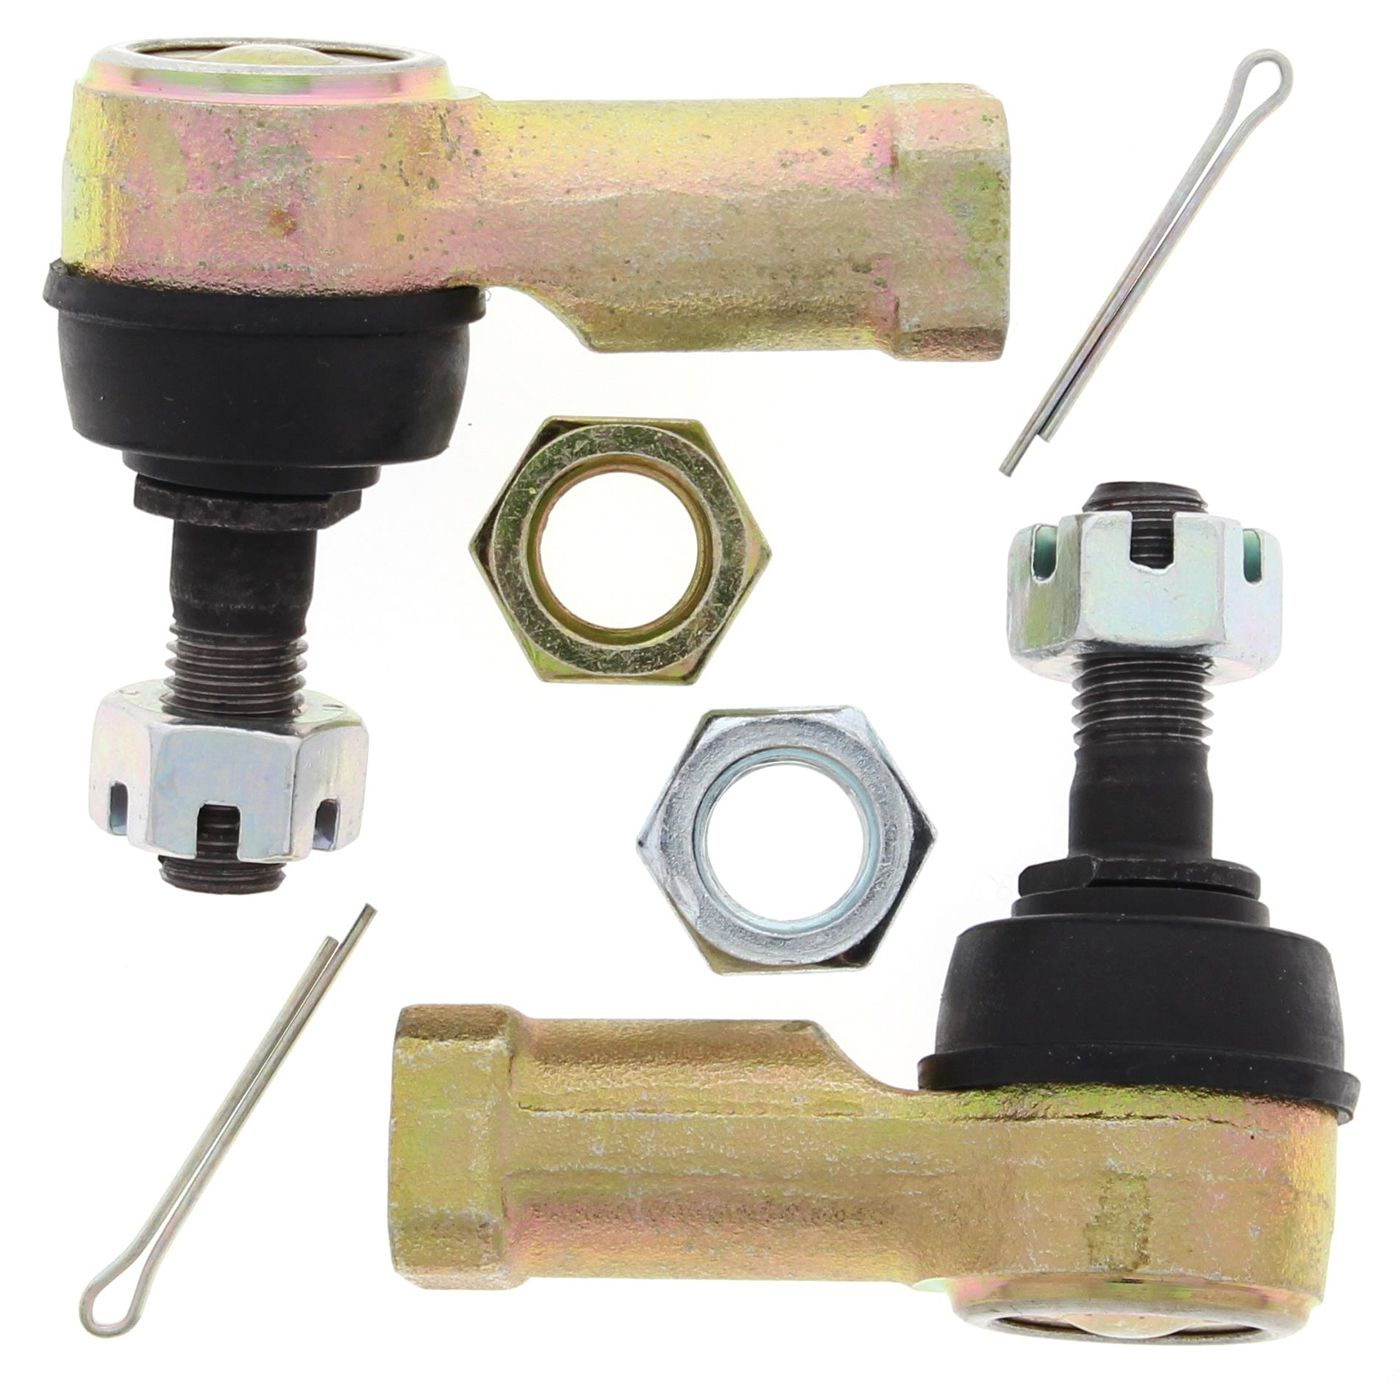 Wrp Tie Rod Ends - WRP511006 image